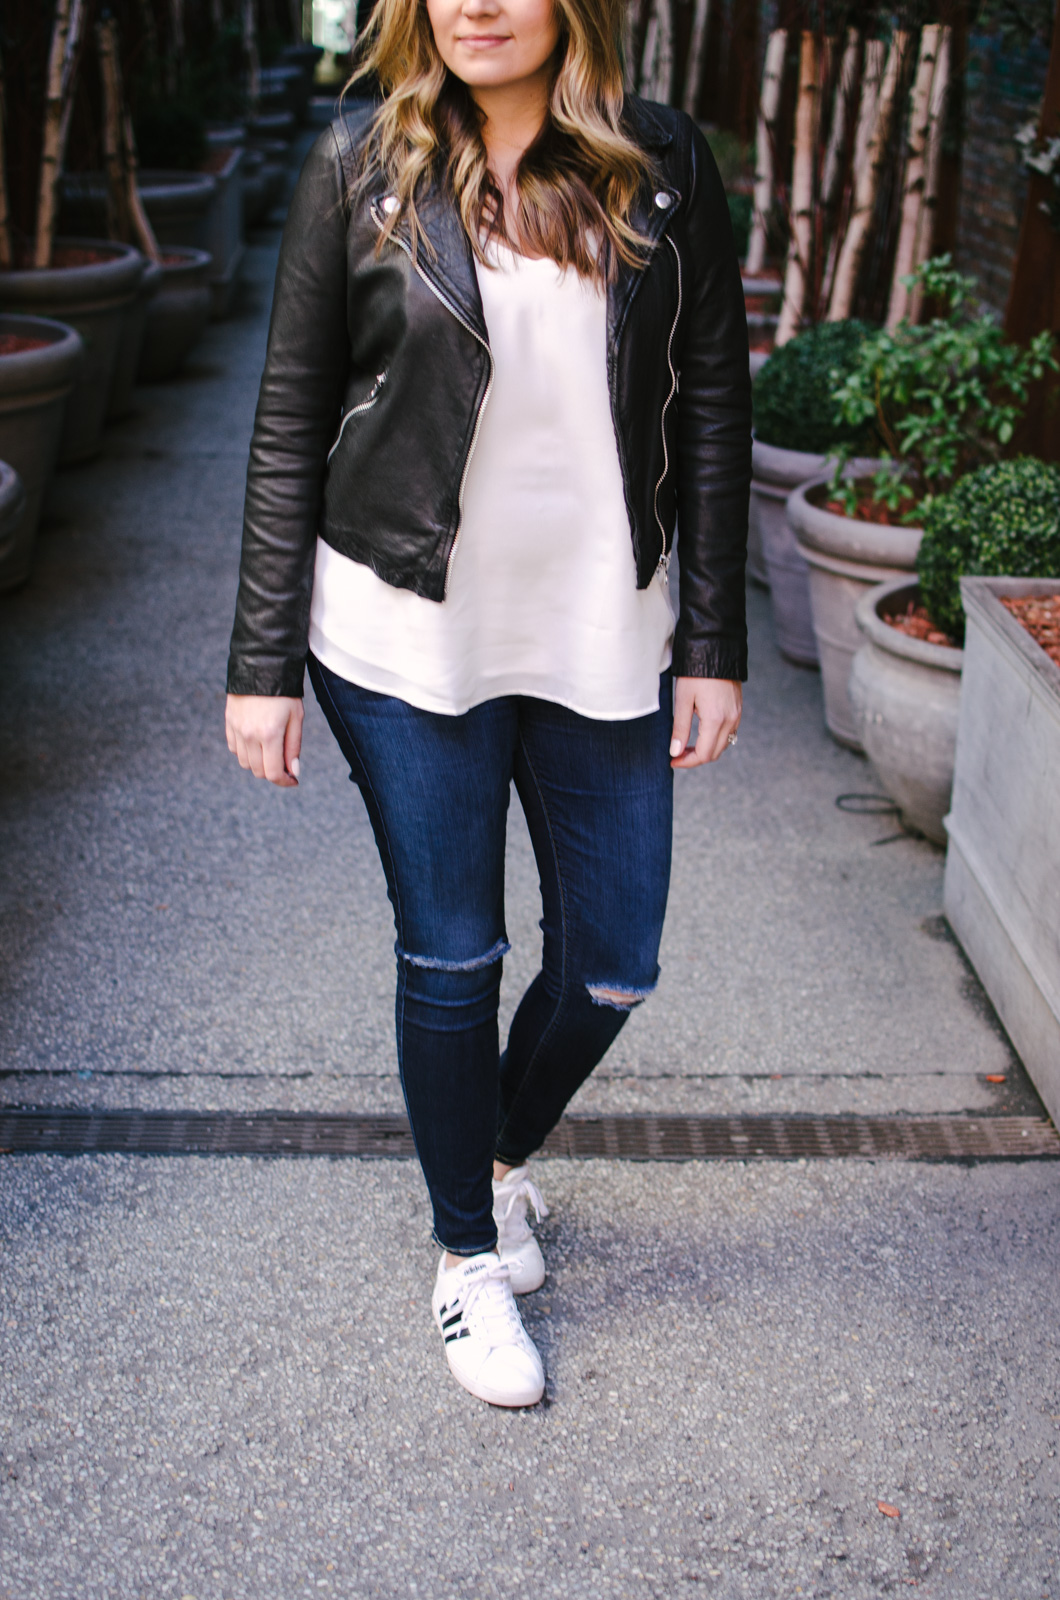 leather jacket casual outfit idea - how wear leather jacket spring | bylaurenm.com